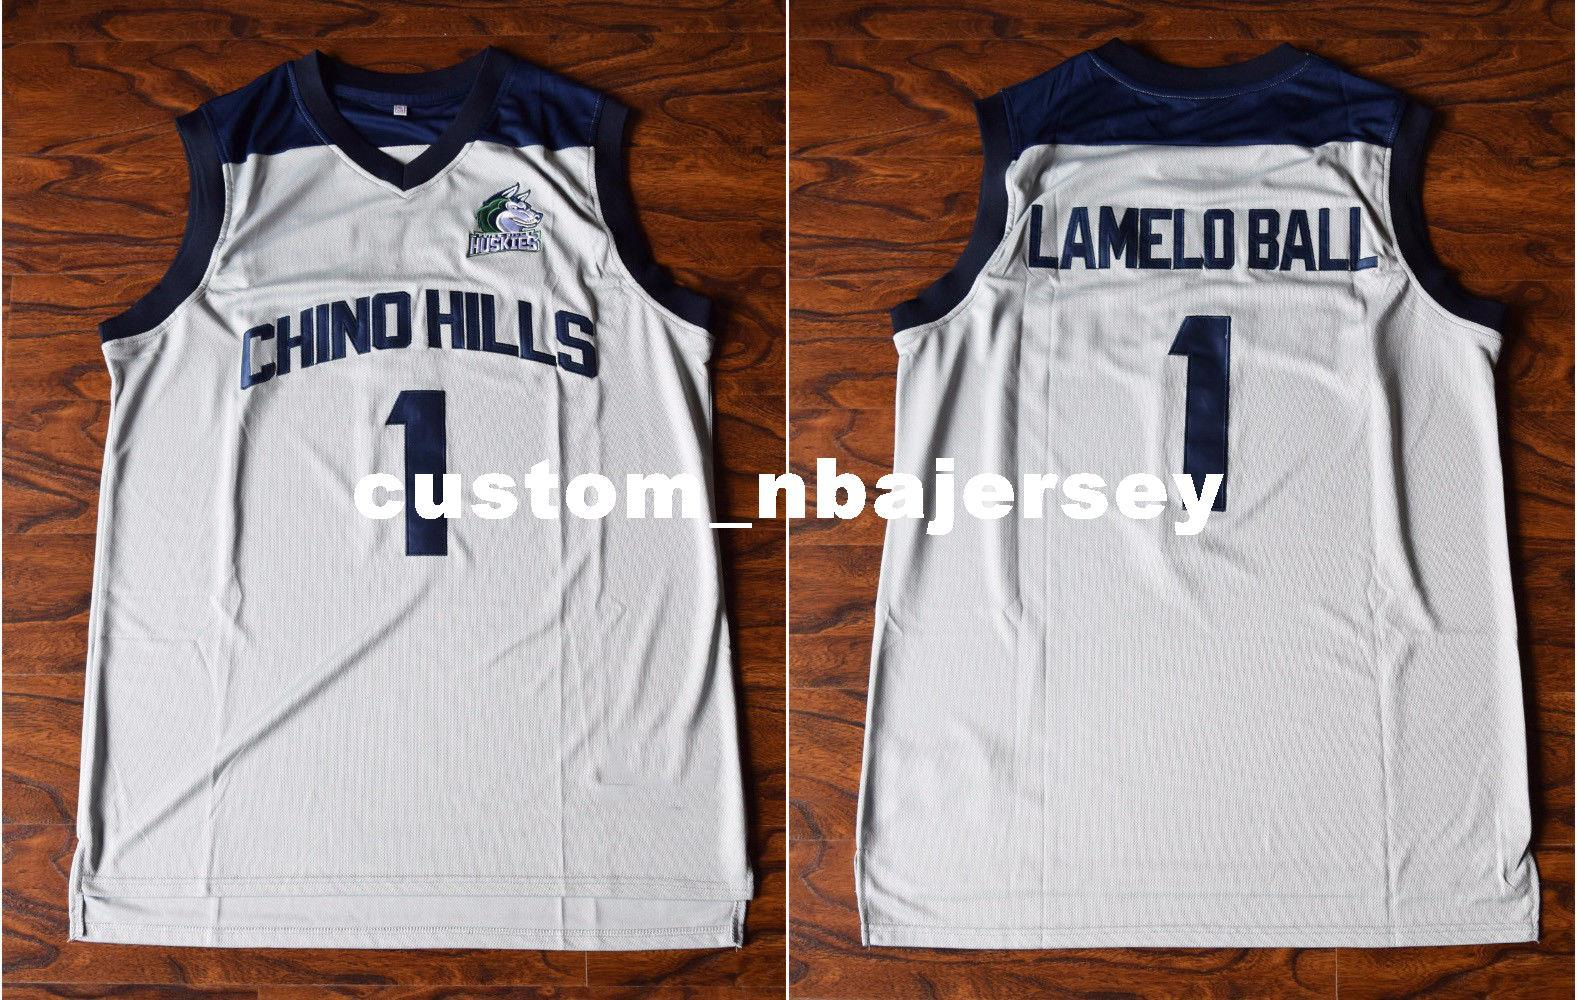 2019 Cheap Custom LaMelo Ball  1 Chino Hill Basketball Stitched Jersey High  School White Stitch Customize Any Number Name MEN WOMEN YOUTH XS 5XL From  ... 8d78a6c81